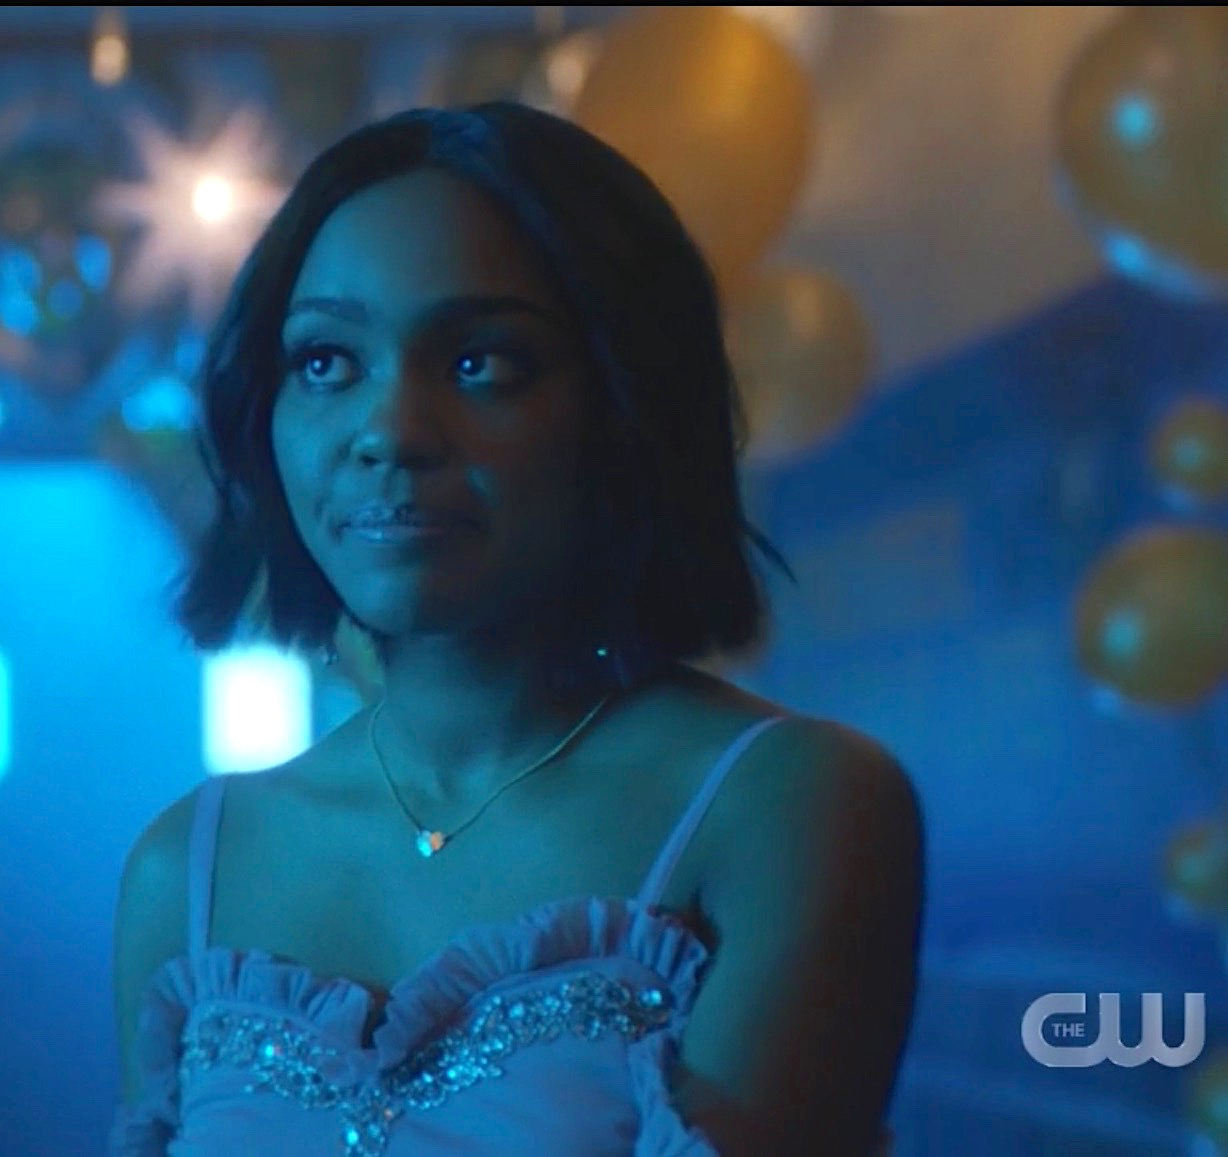 Heart Necklace - Our 14k Gold Filled Heart Necklace plays a significant role for China Anne McClain as Jennifer Peirce.